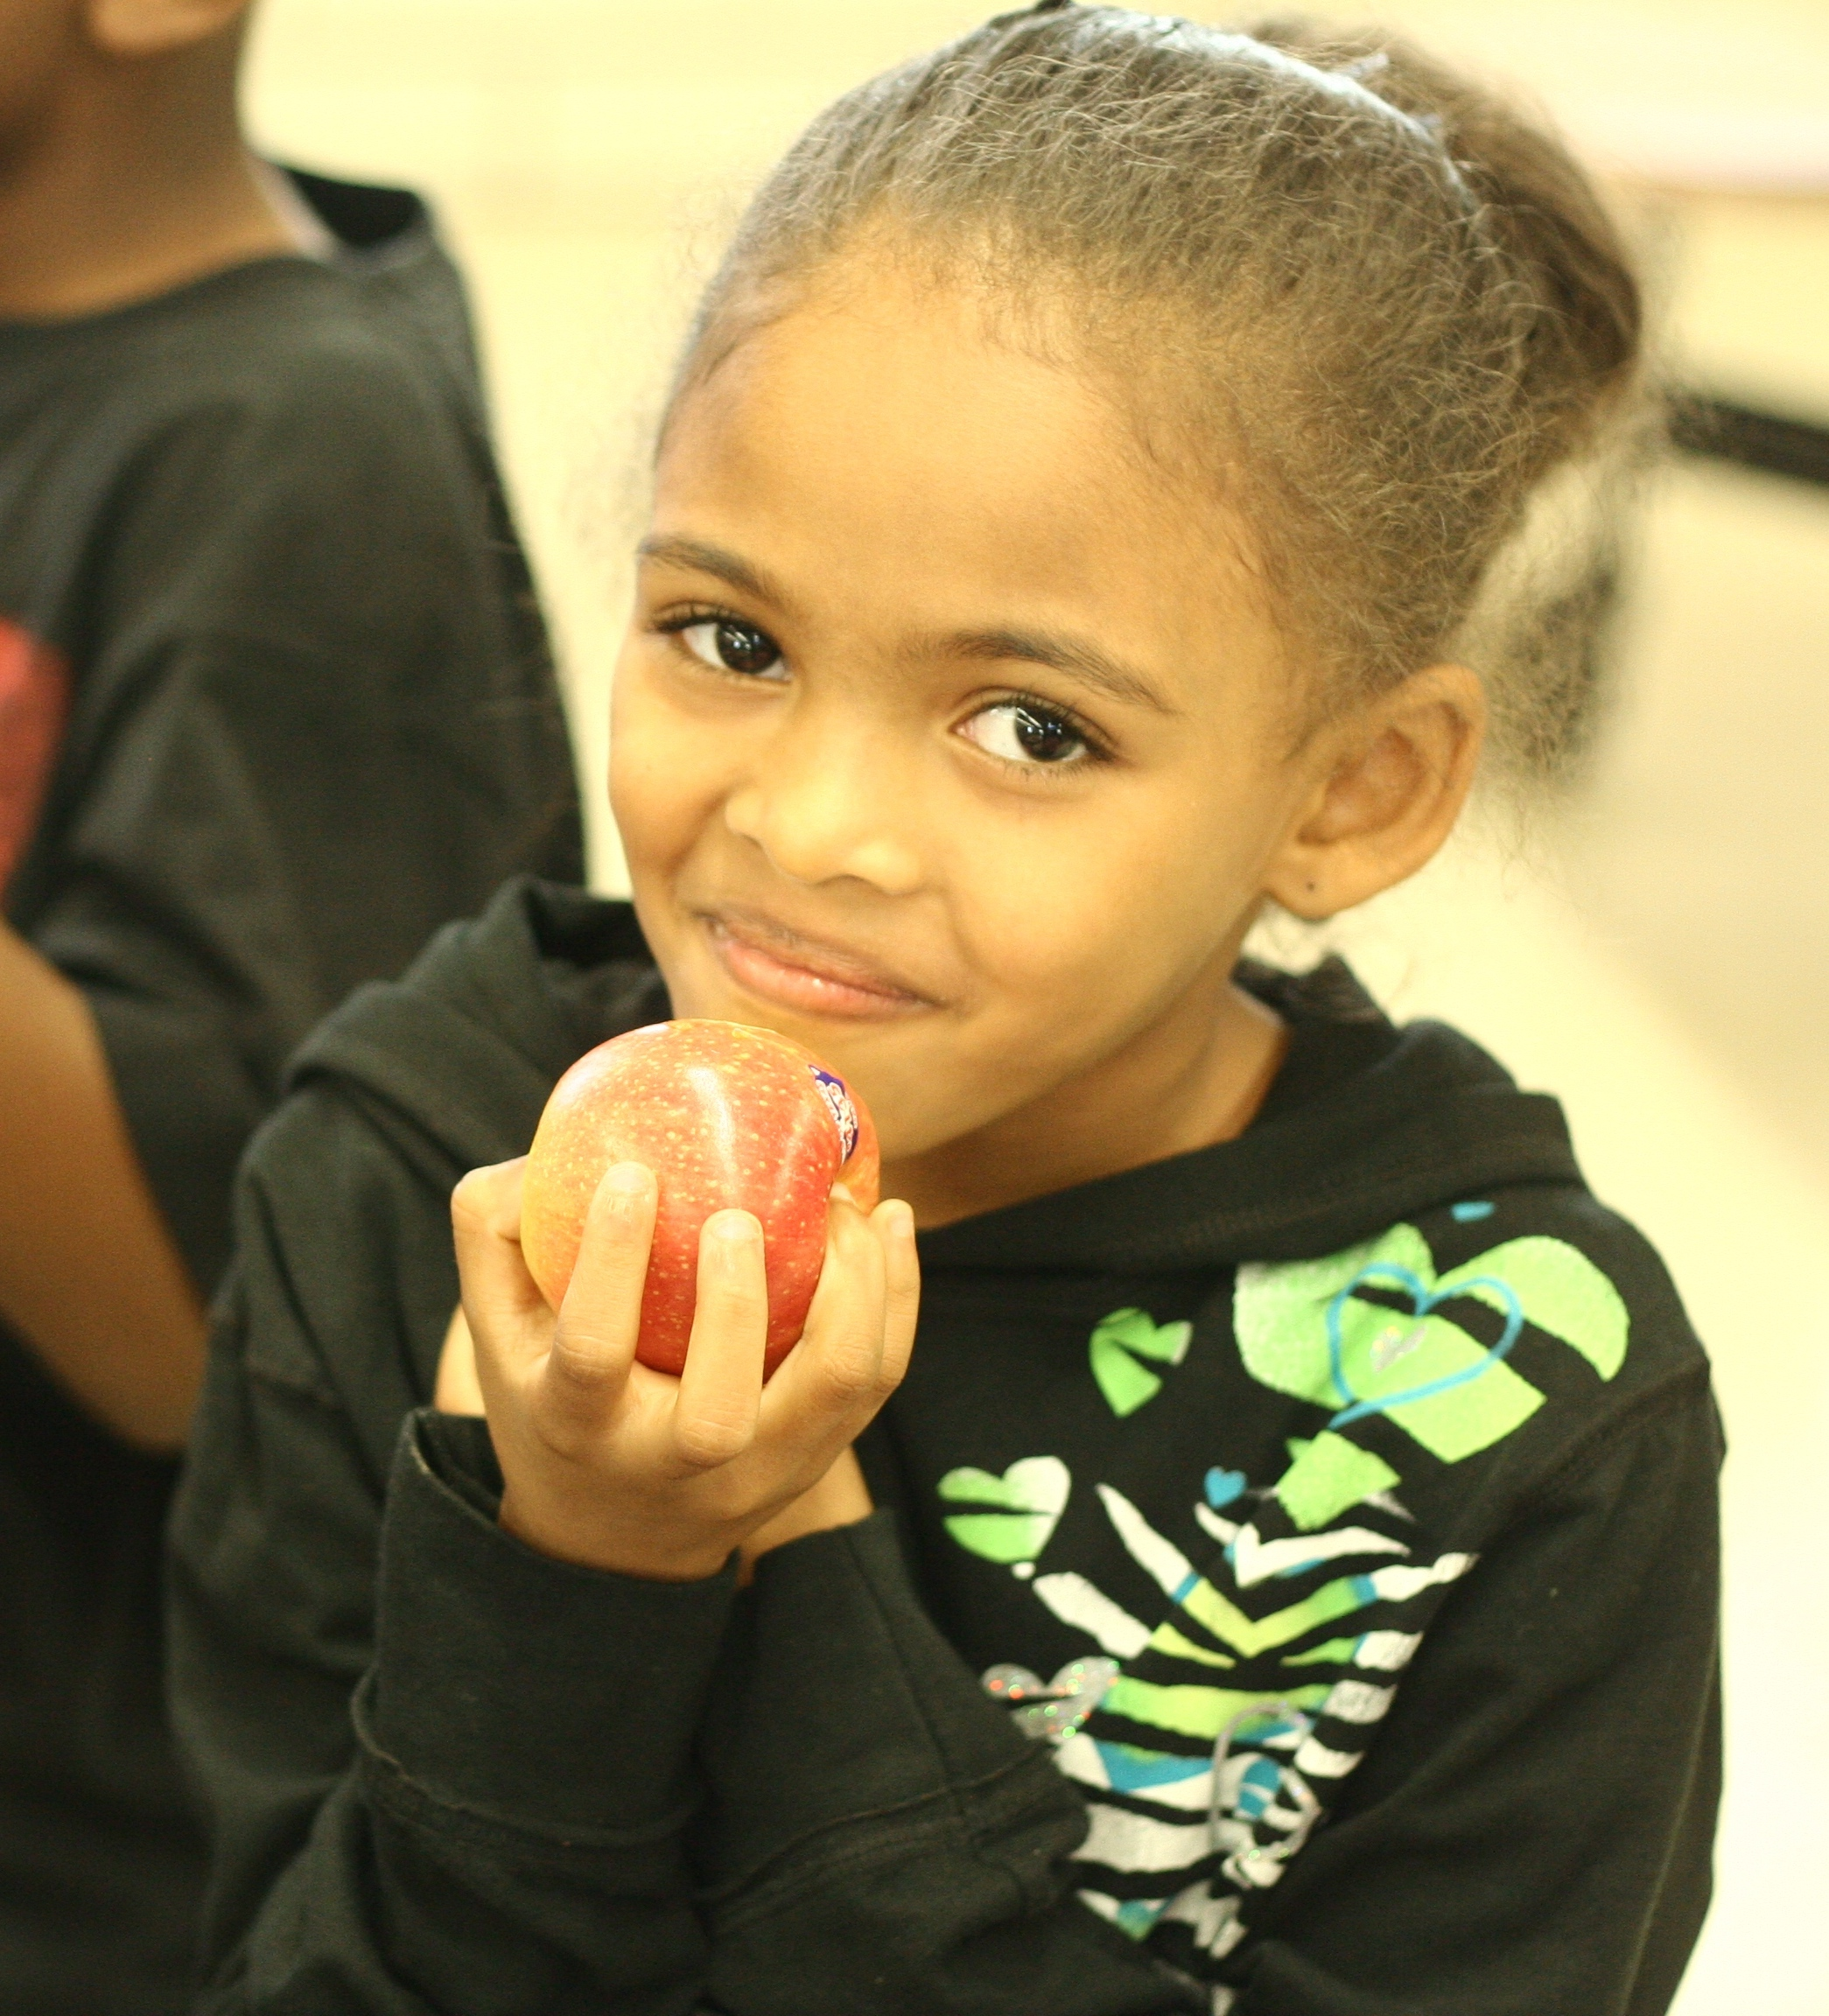 Andrews Elementary Student with Apple